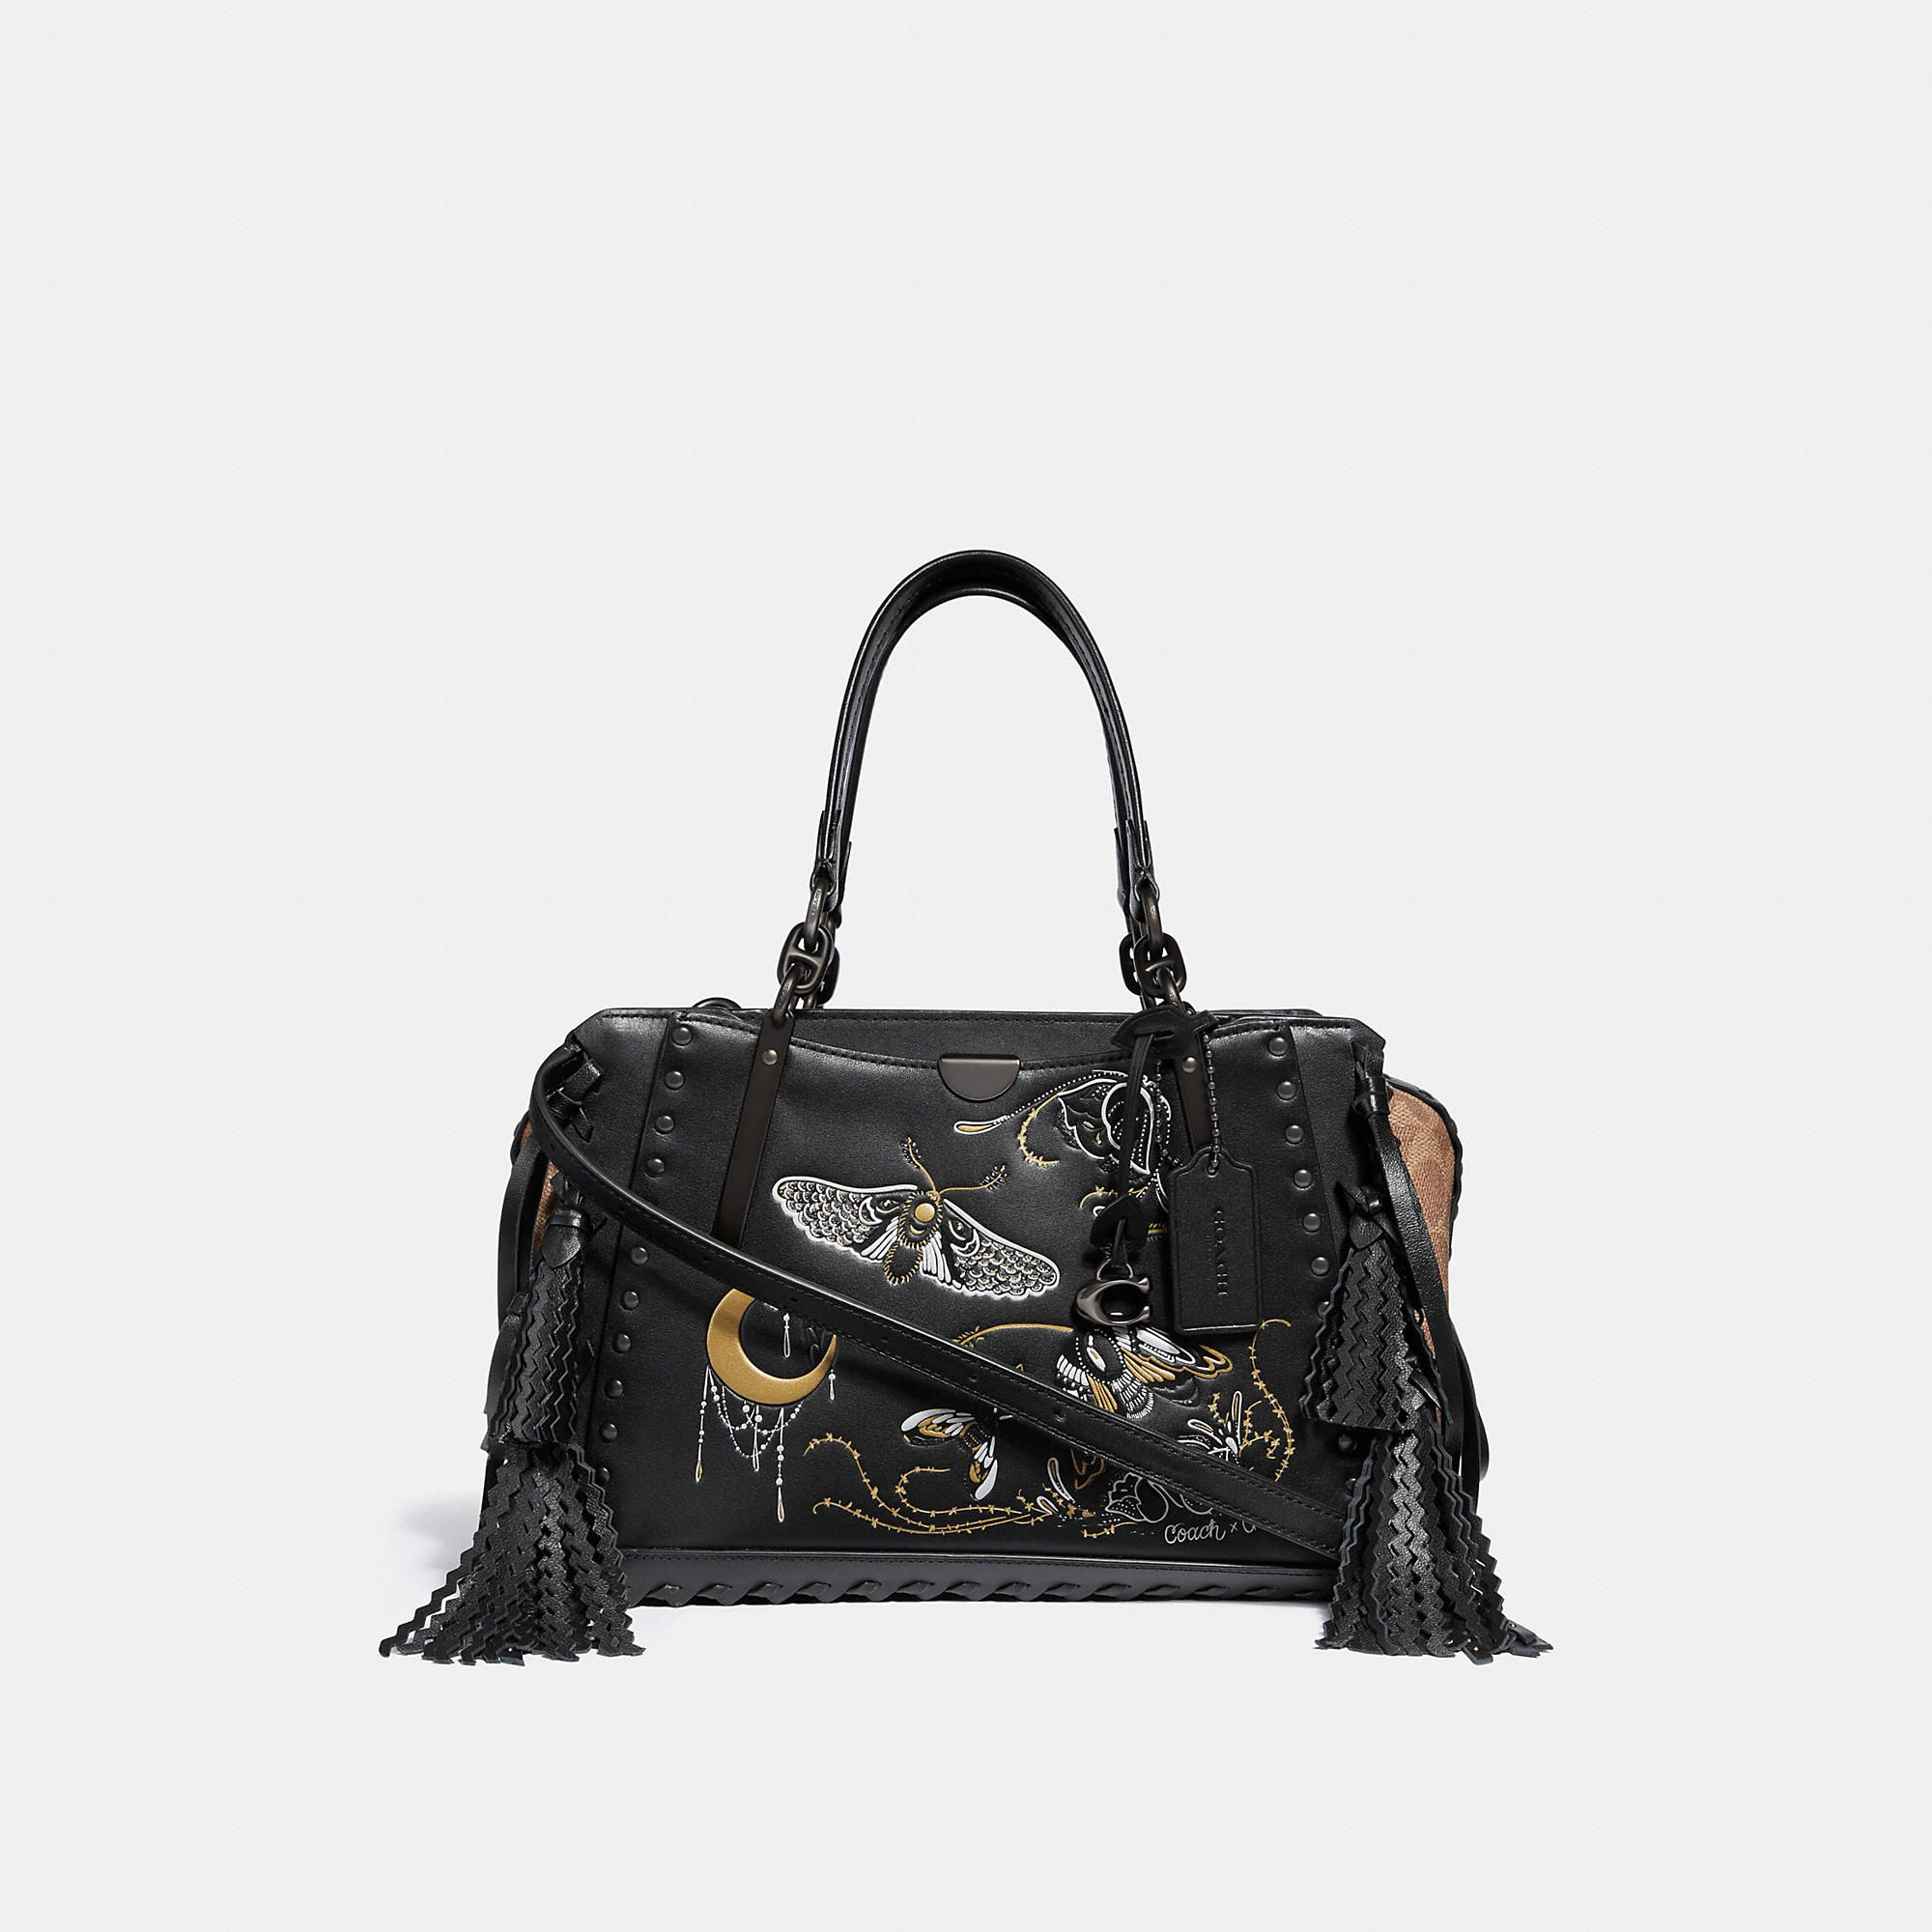 COACH COACH DREAMER IN SIGNATURE CANVAS WITH TATTOO.  coach  bags  canvas   crossbody  leather  lining  shoulder bags  hand bags   12e52222b37a8